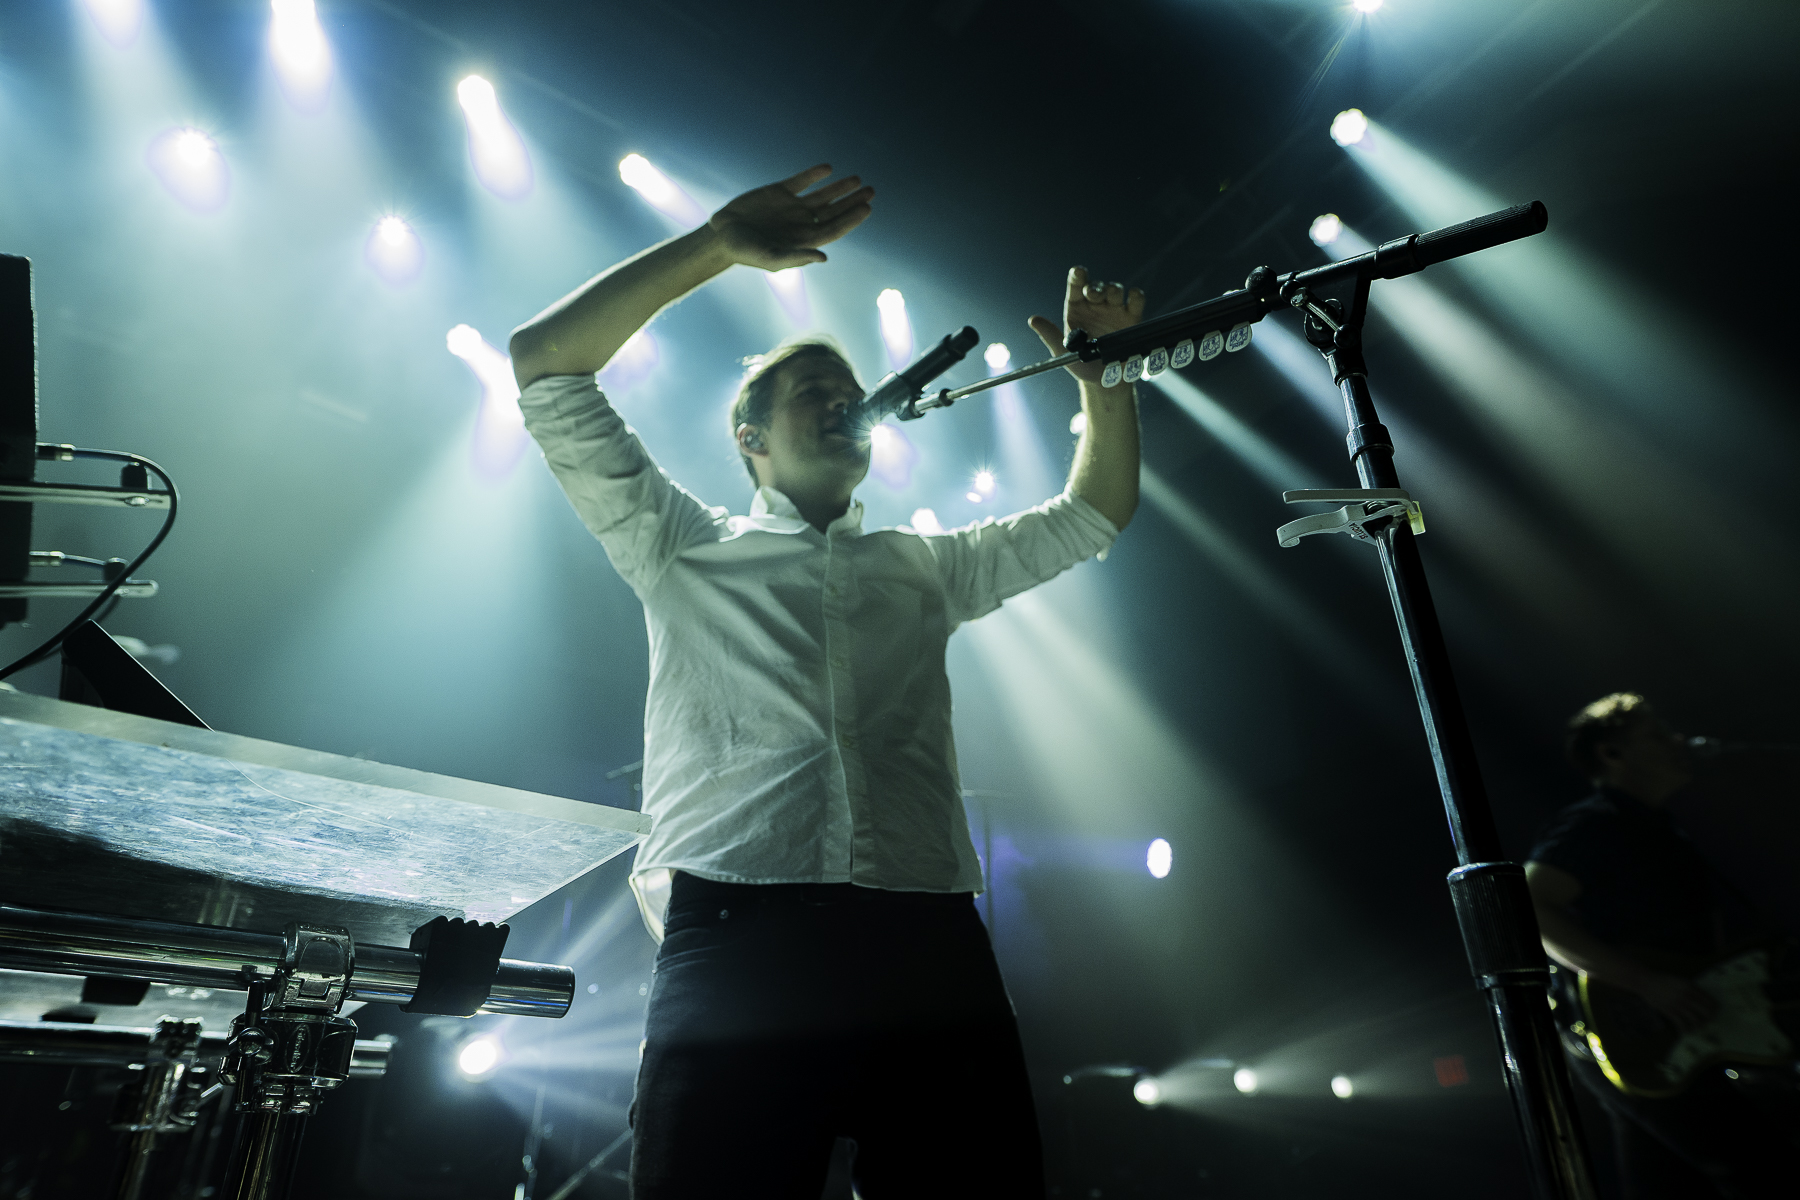 St. Lucia's Jean-Phillip Grobler at 9:30 Club (Photo by Krystina Brown /  @krystinagabrielle )